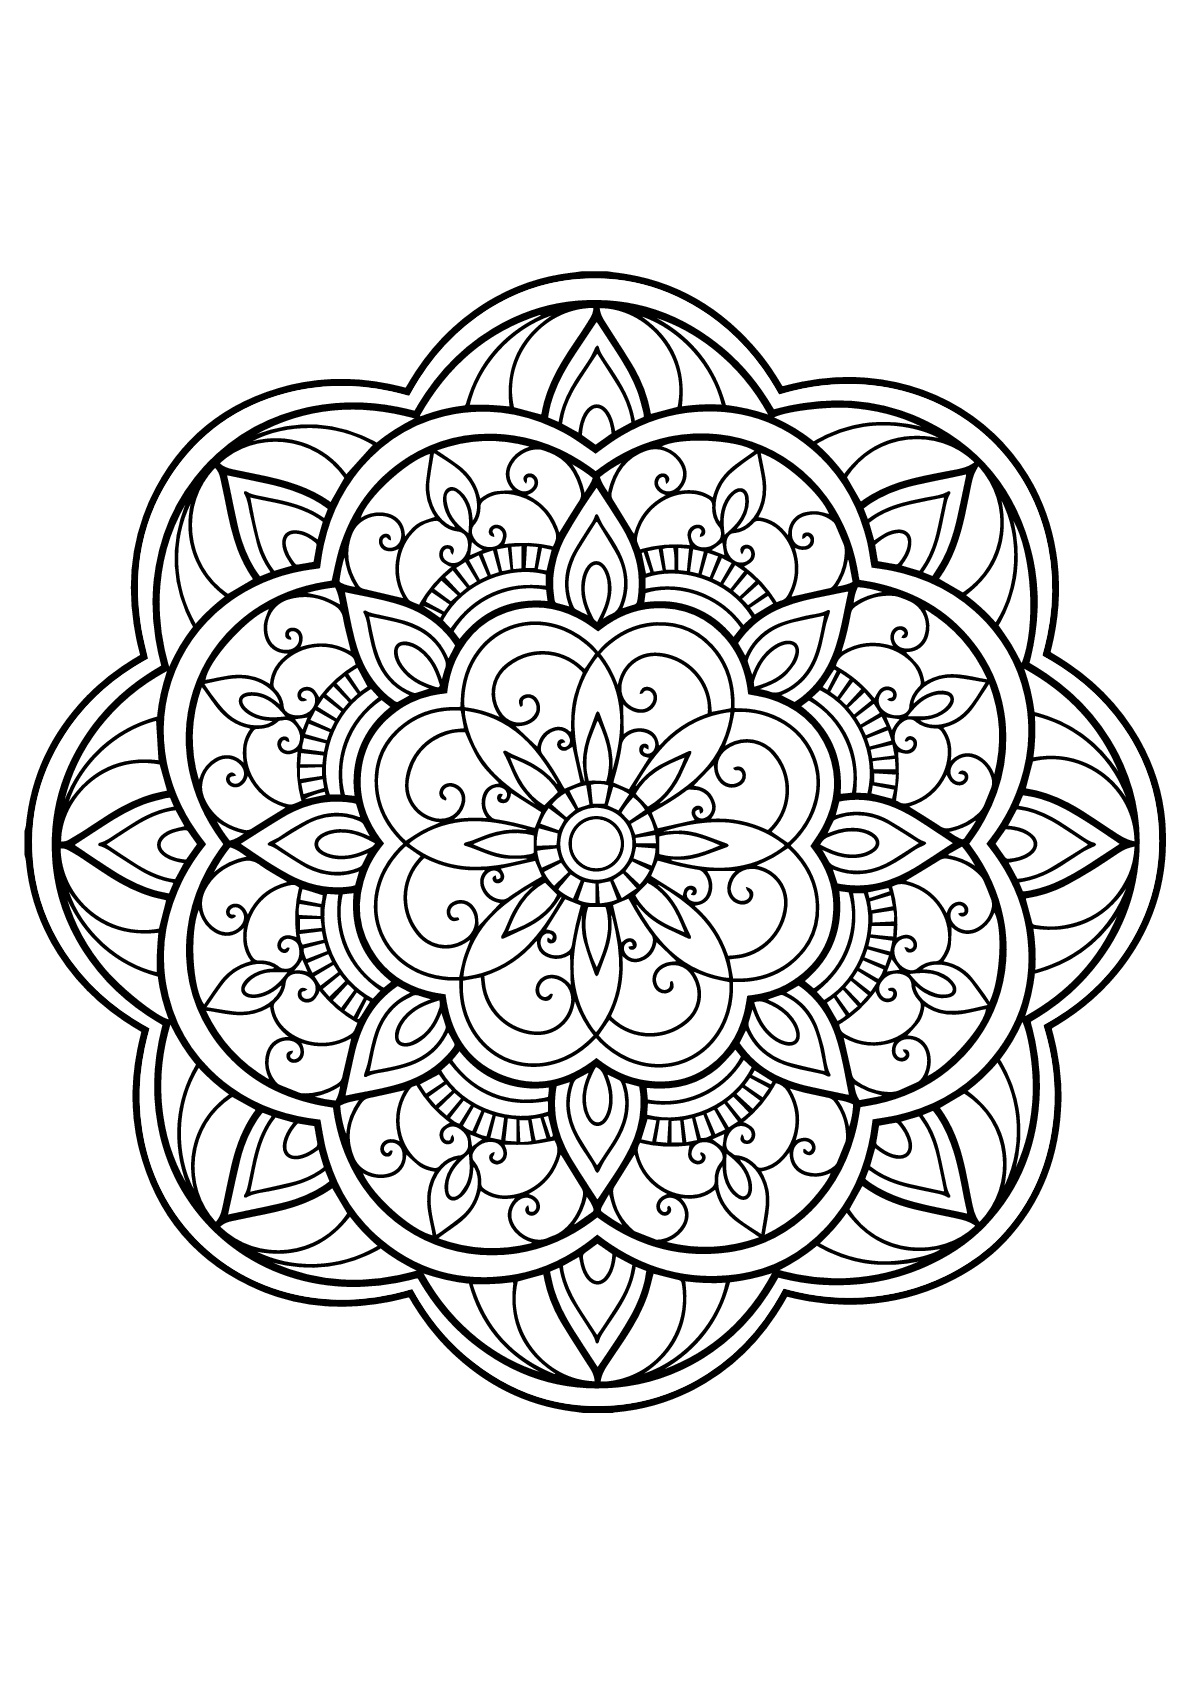 free printable mandalas for adults free printable mandala coloring pages for adults best printable for mandalas adults free